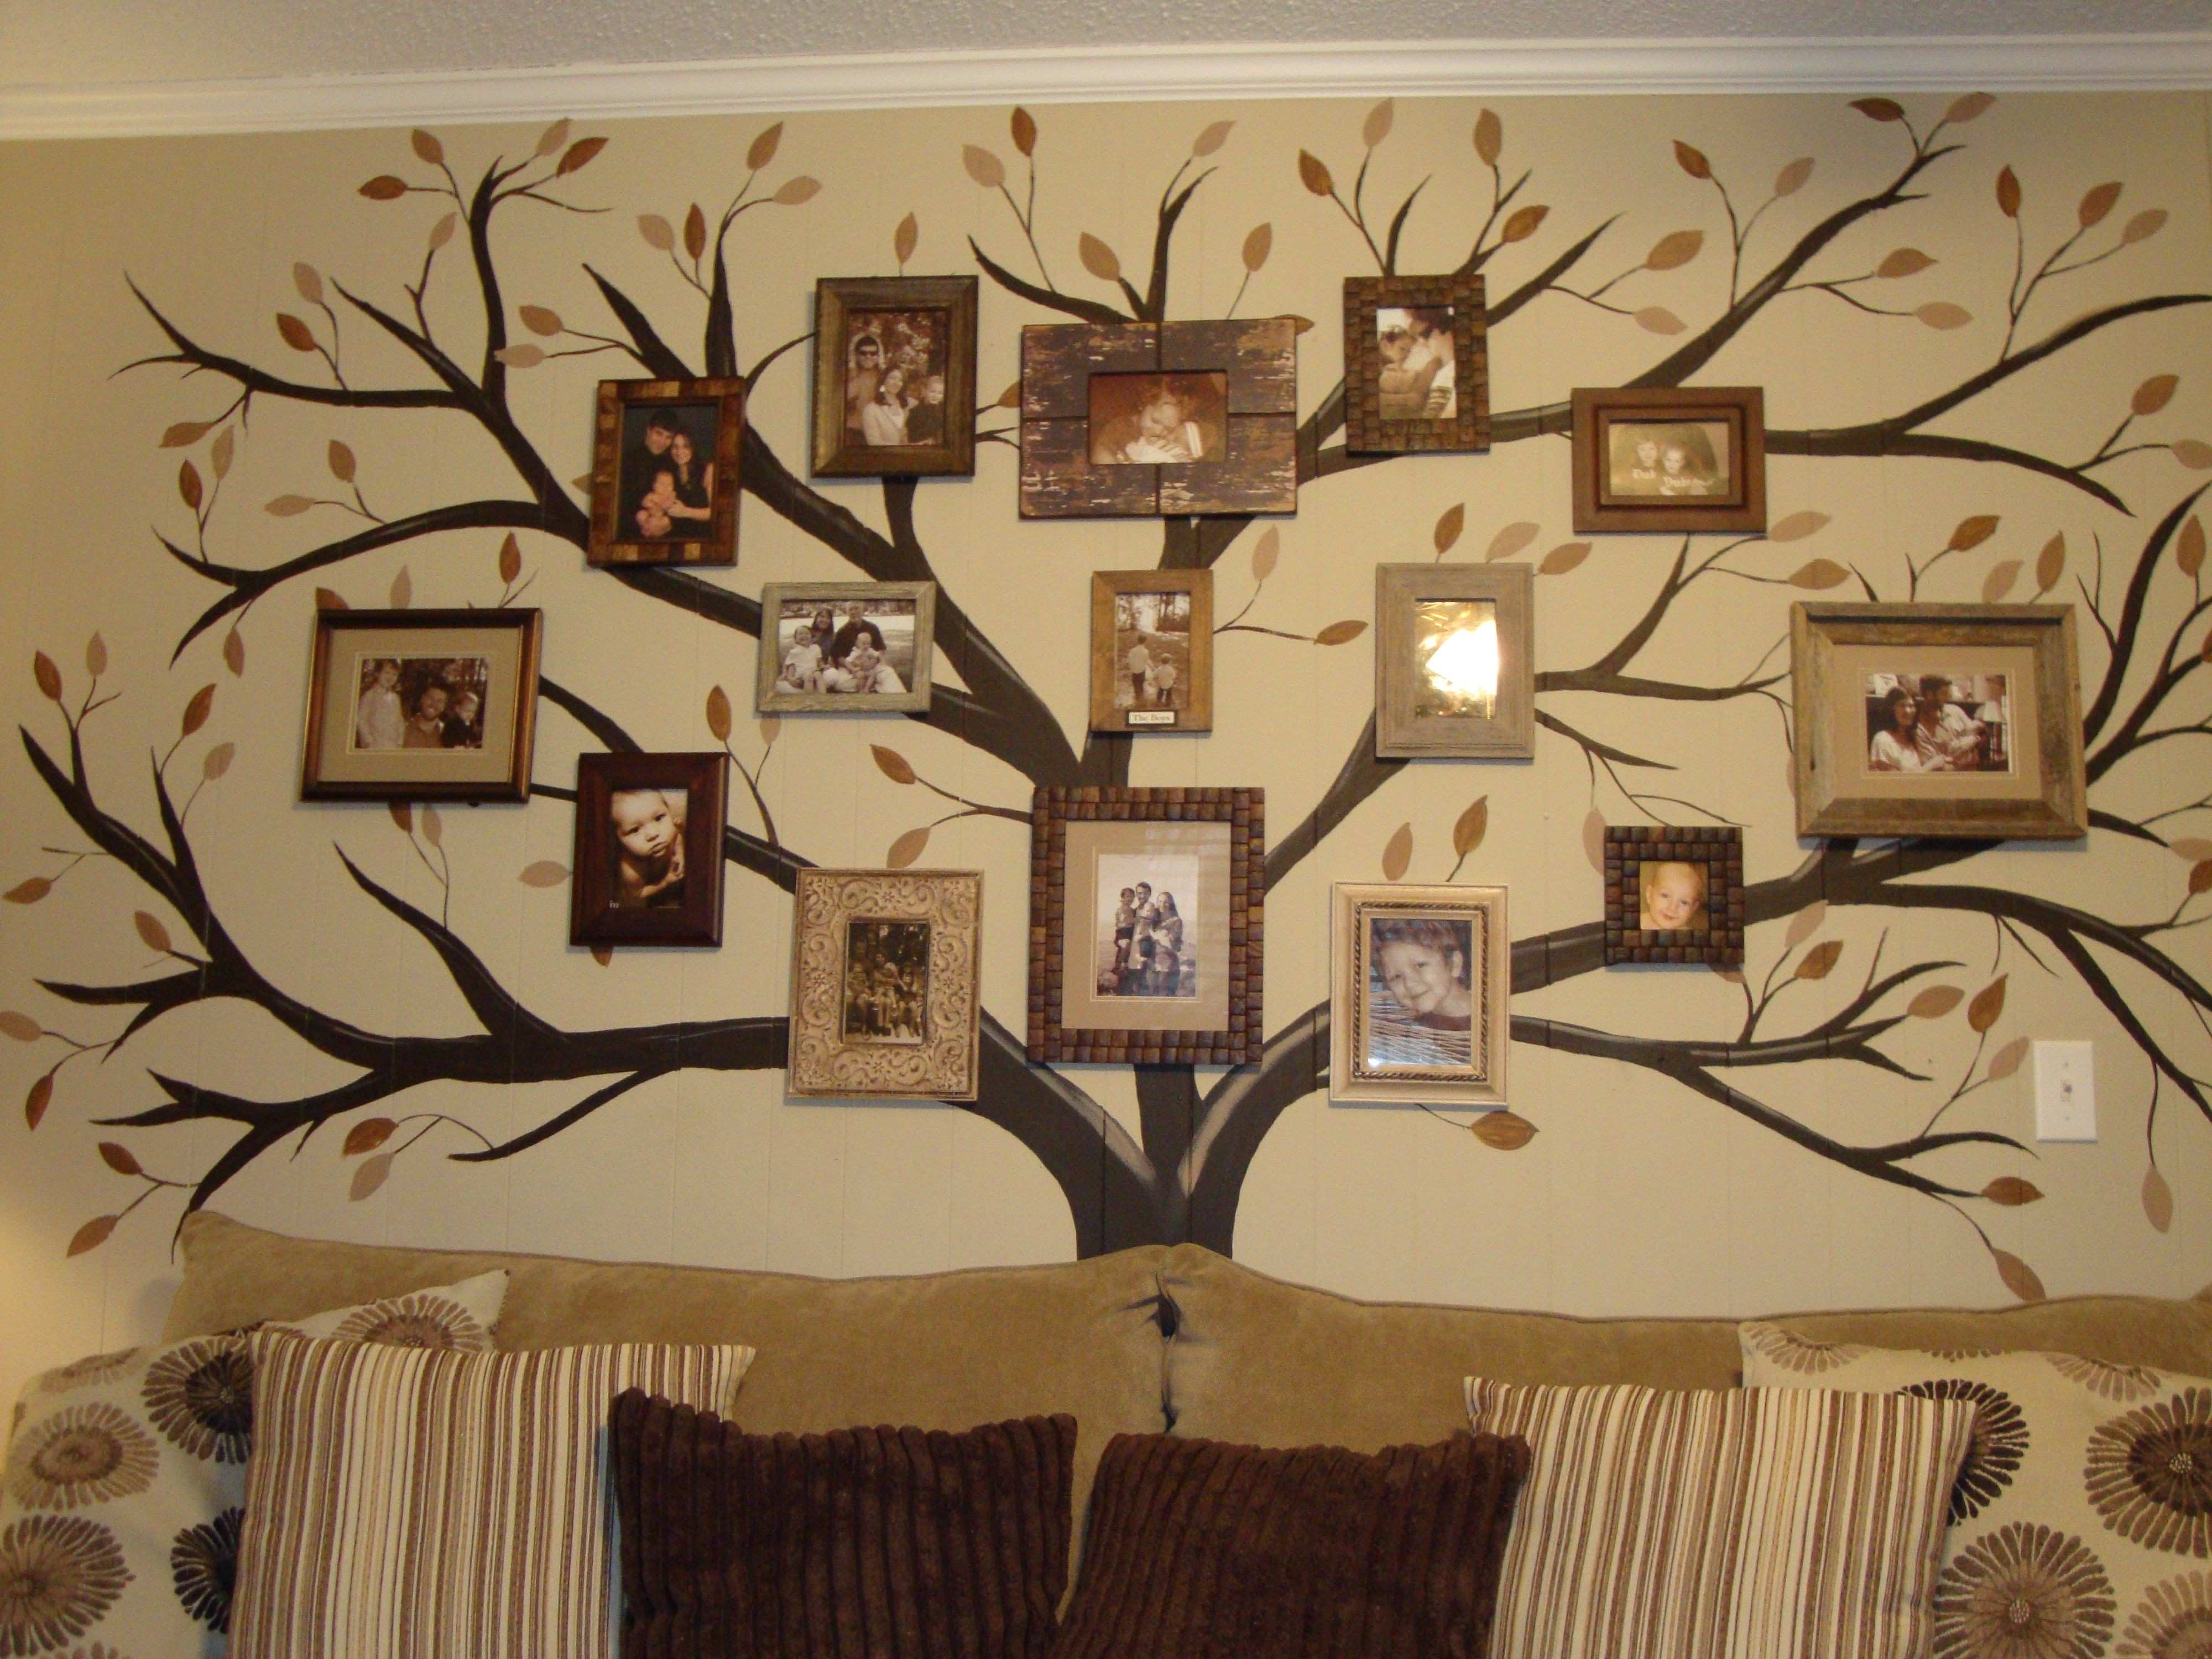 My family tree mural pied from another I found on pinterest